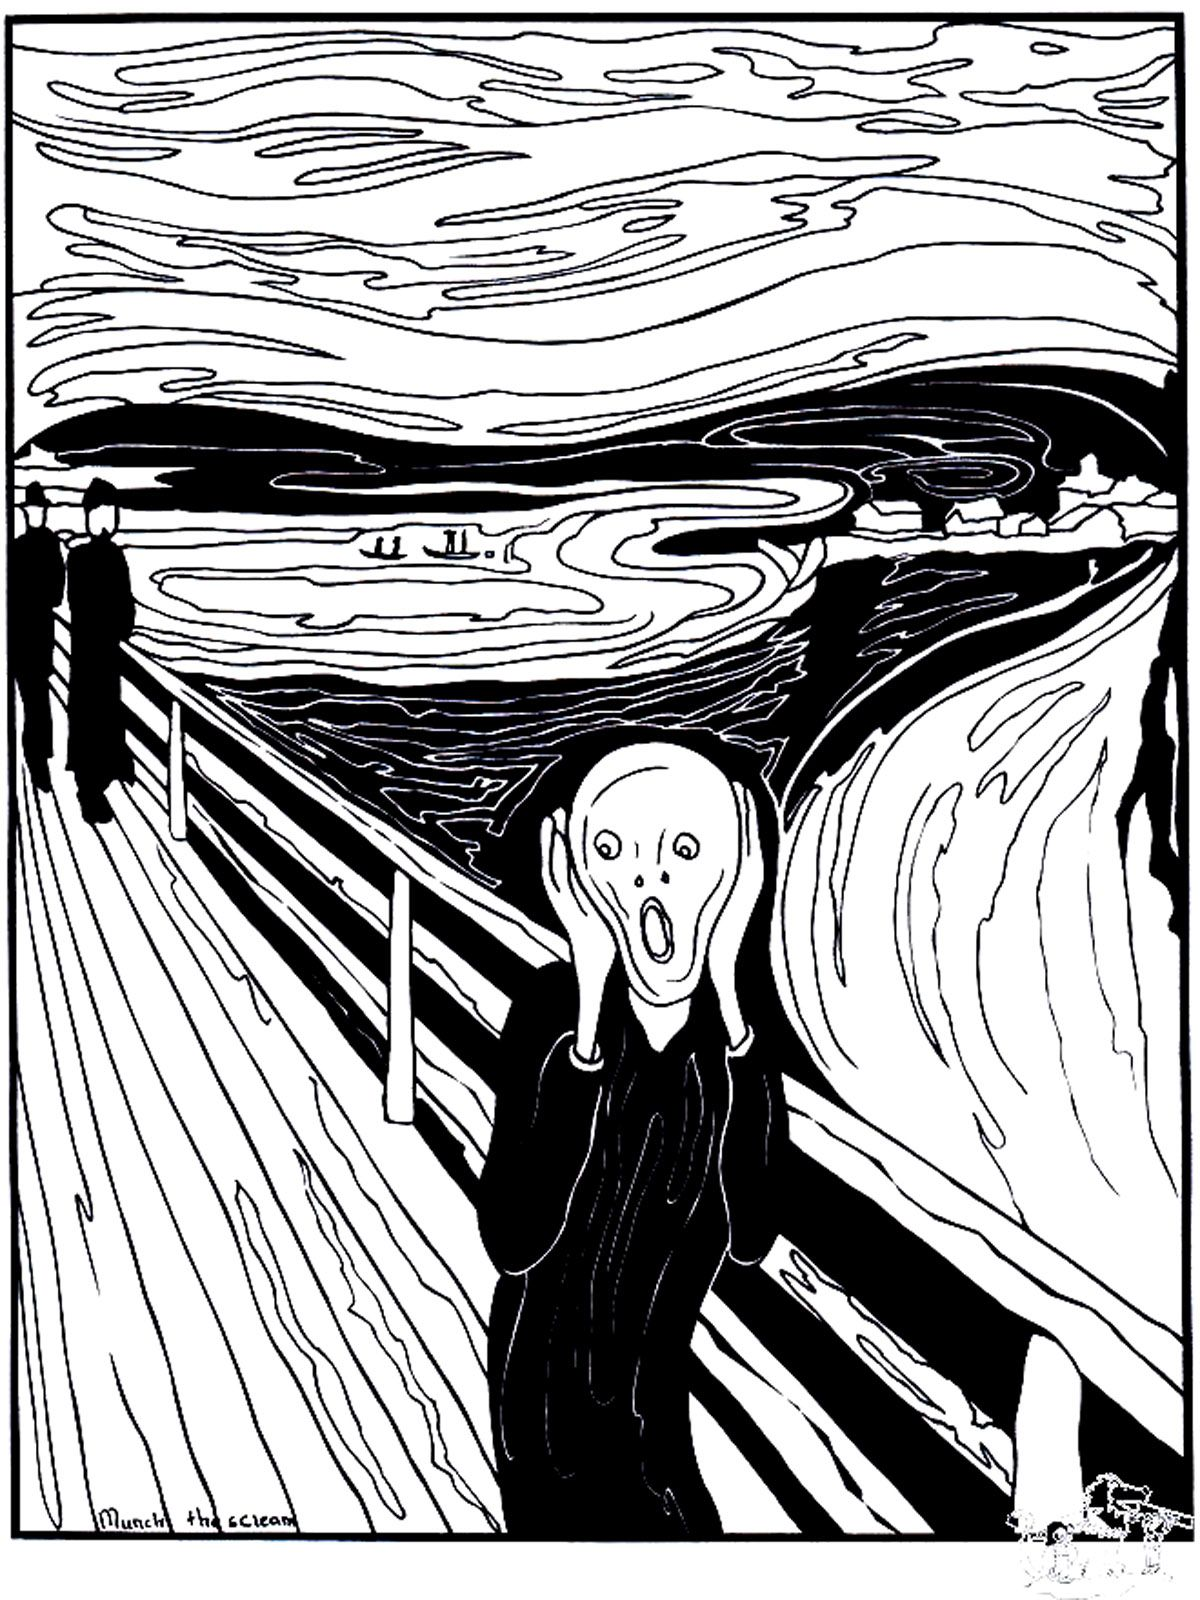 The Scream Was Painted By The Expressionist Artist Edvard Munch In From The Gallery Art